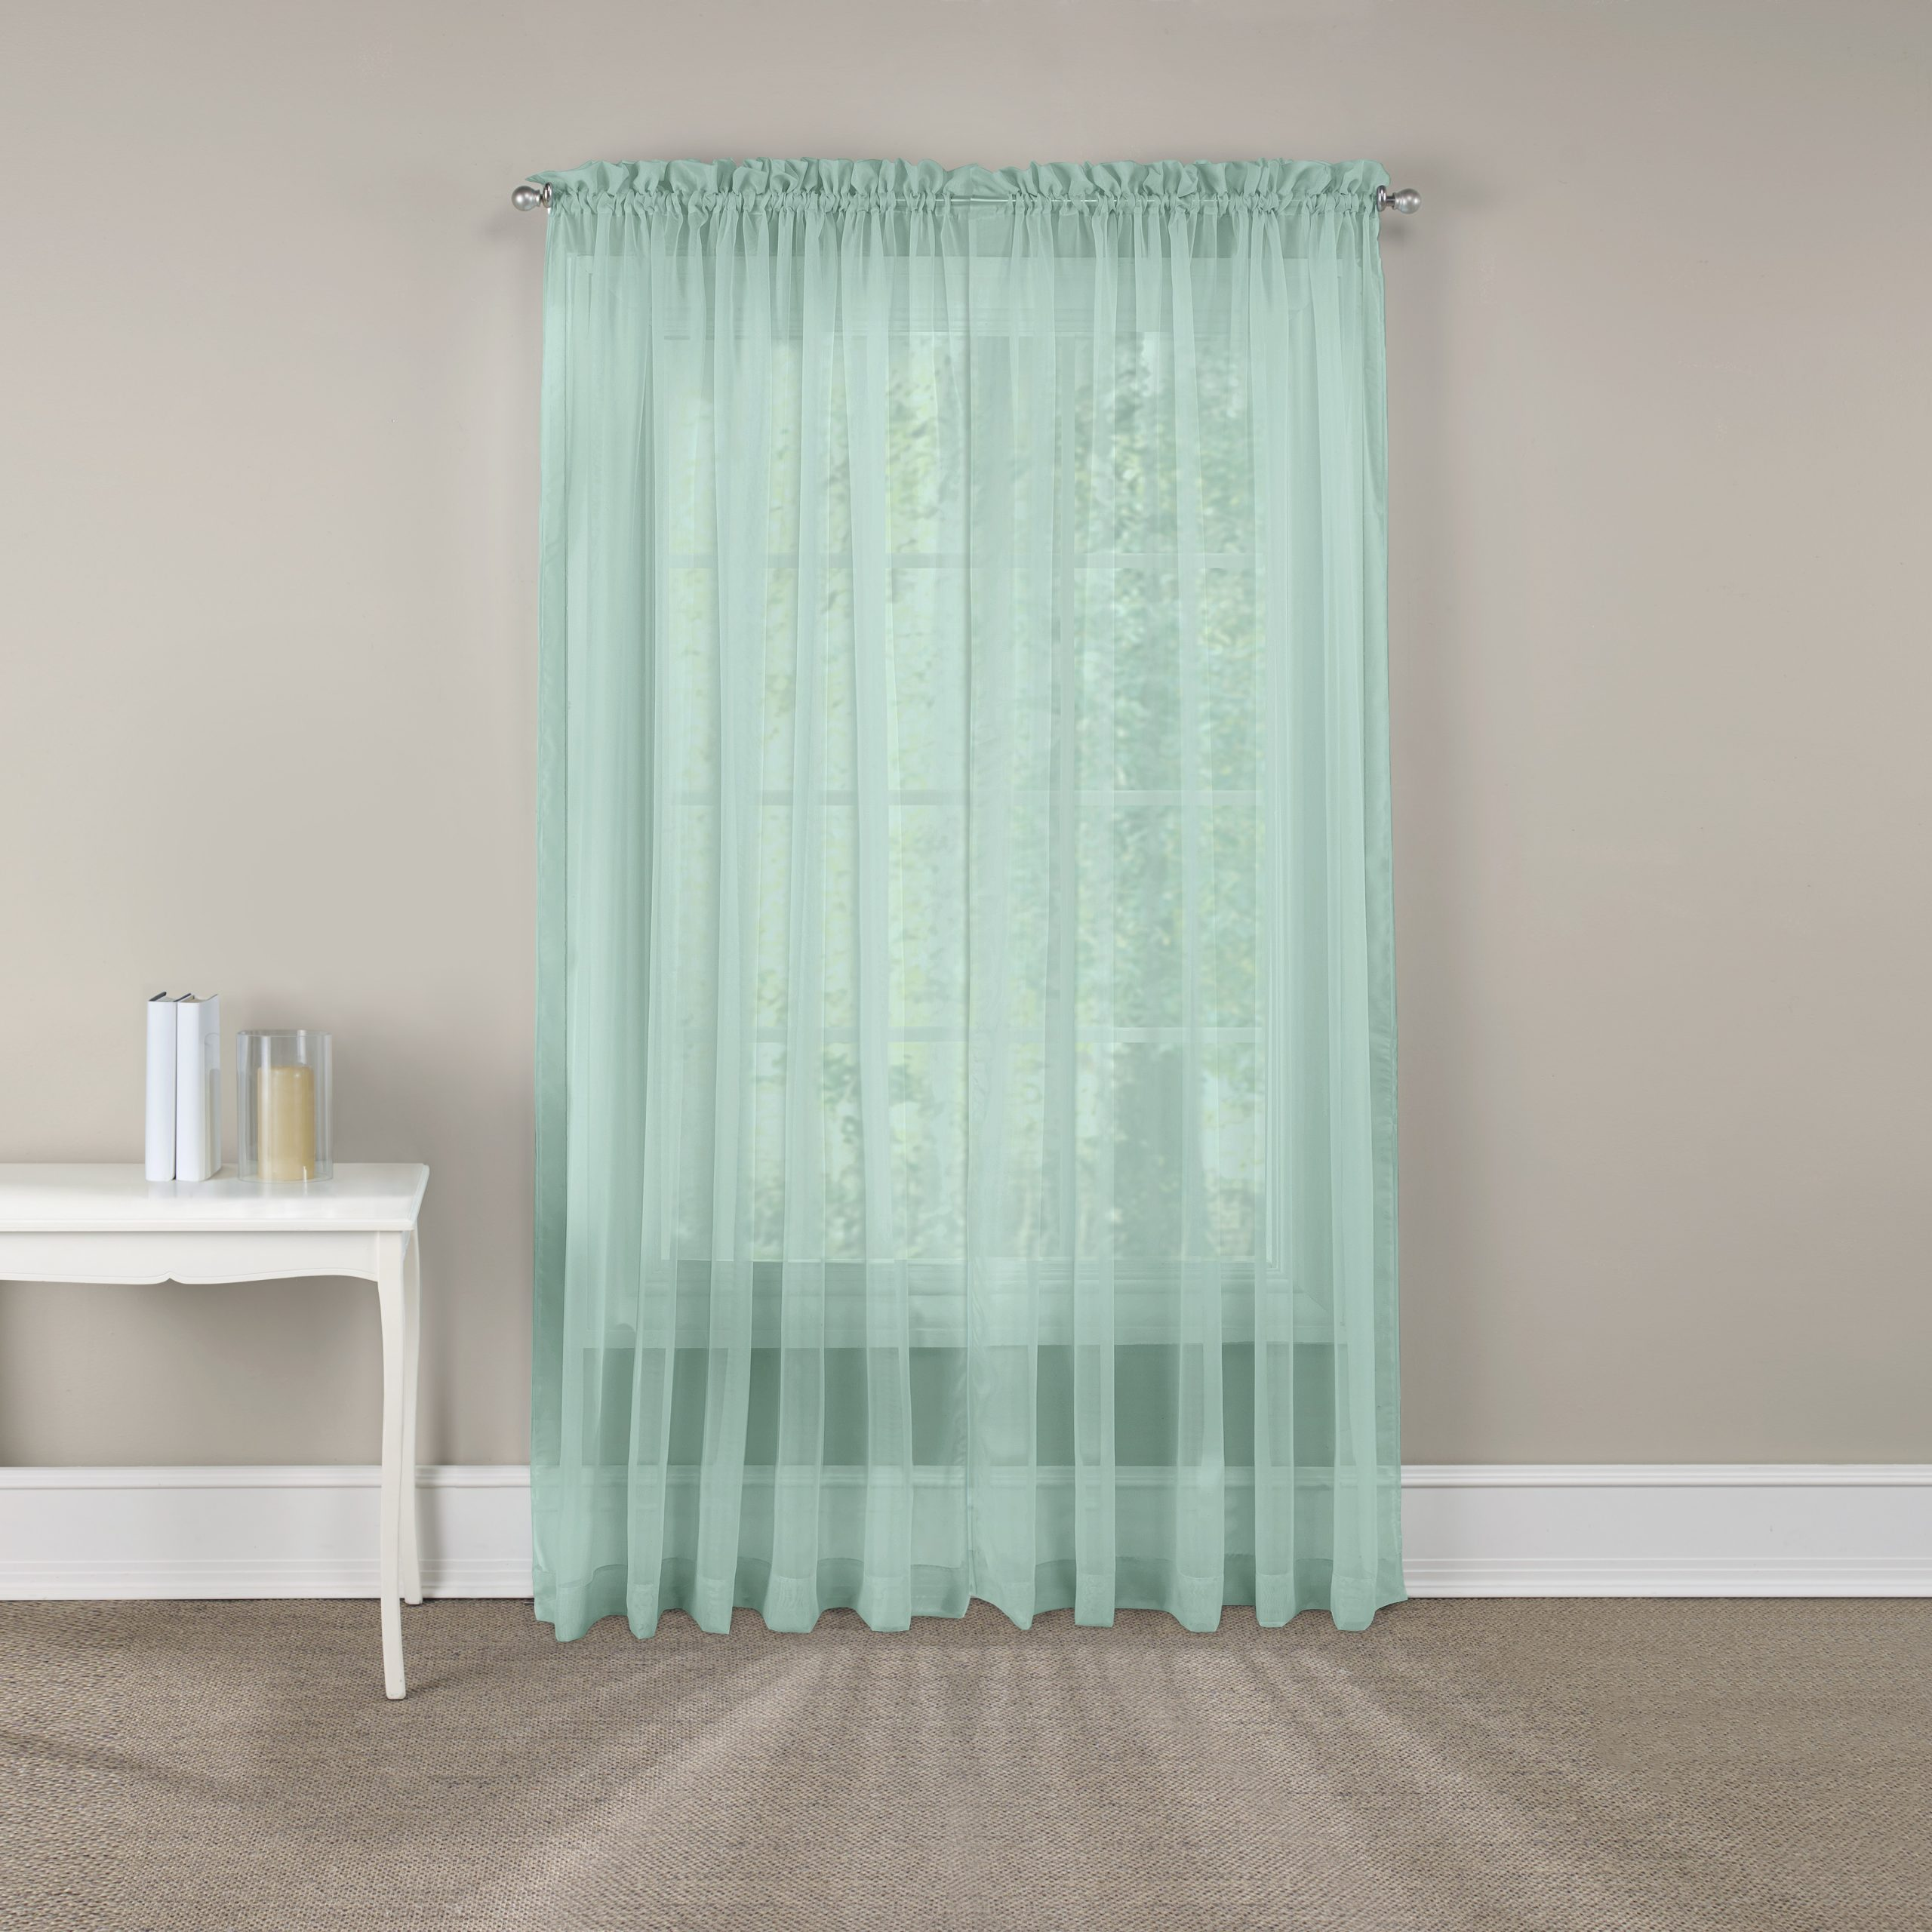 Well Known Pairs To Go™ Victoria Voile Curtain Panel Pair With Regard To Pairs To Go Victoria Voile Curtain Panel Pairs (View 8 of 20)